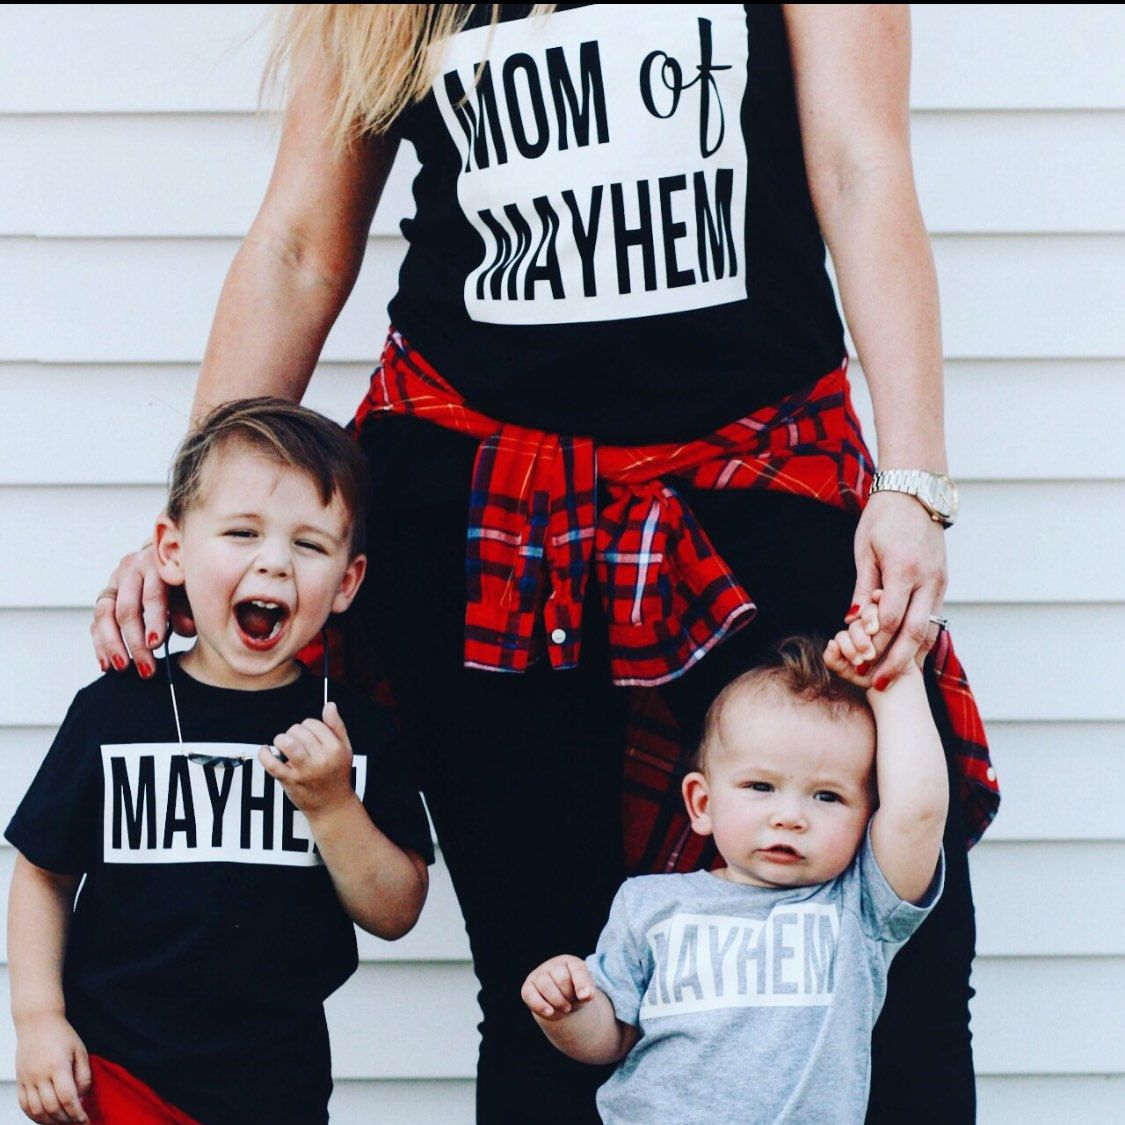 mom of mayhem mommy and me mom and daughter son shirts